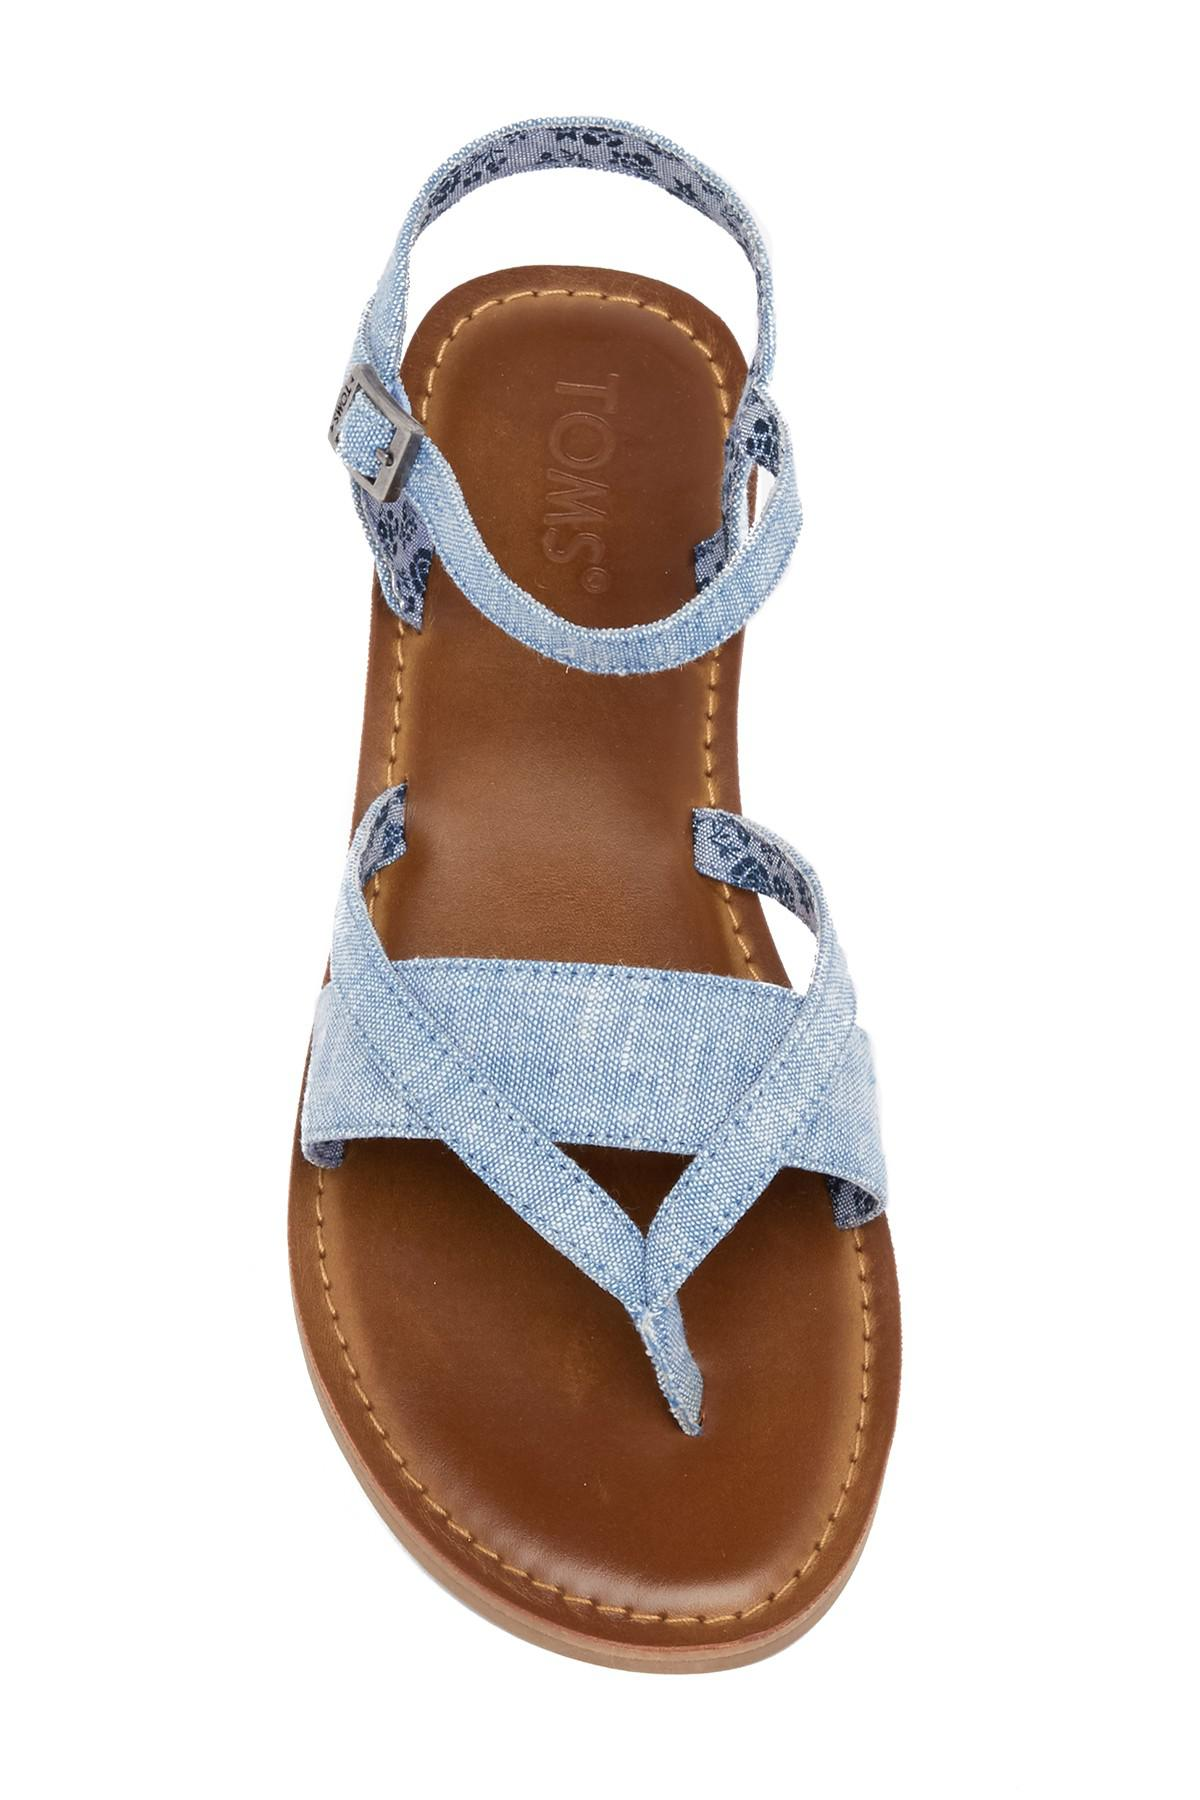 aff1ec0f39a Lyst - TOMS Lexie Chambray Thong Sandal in Blue